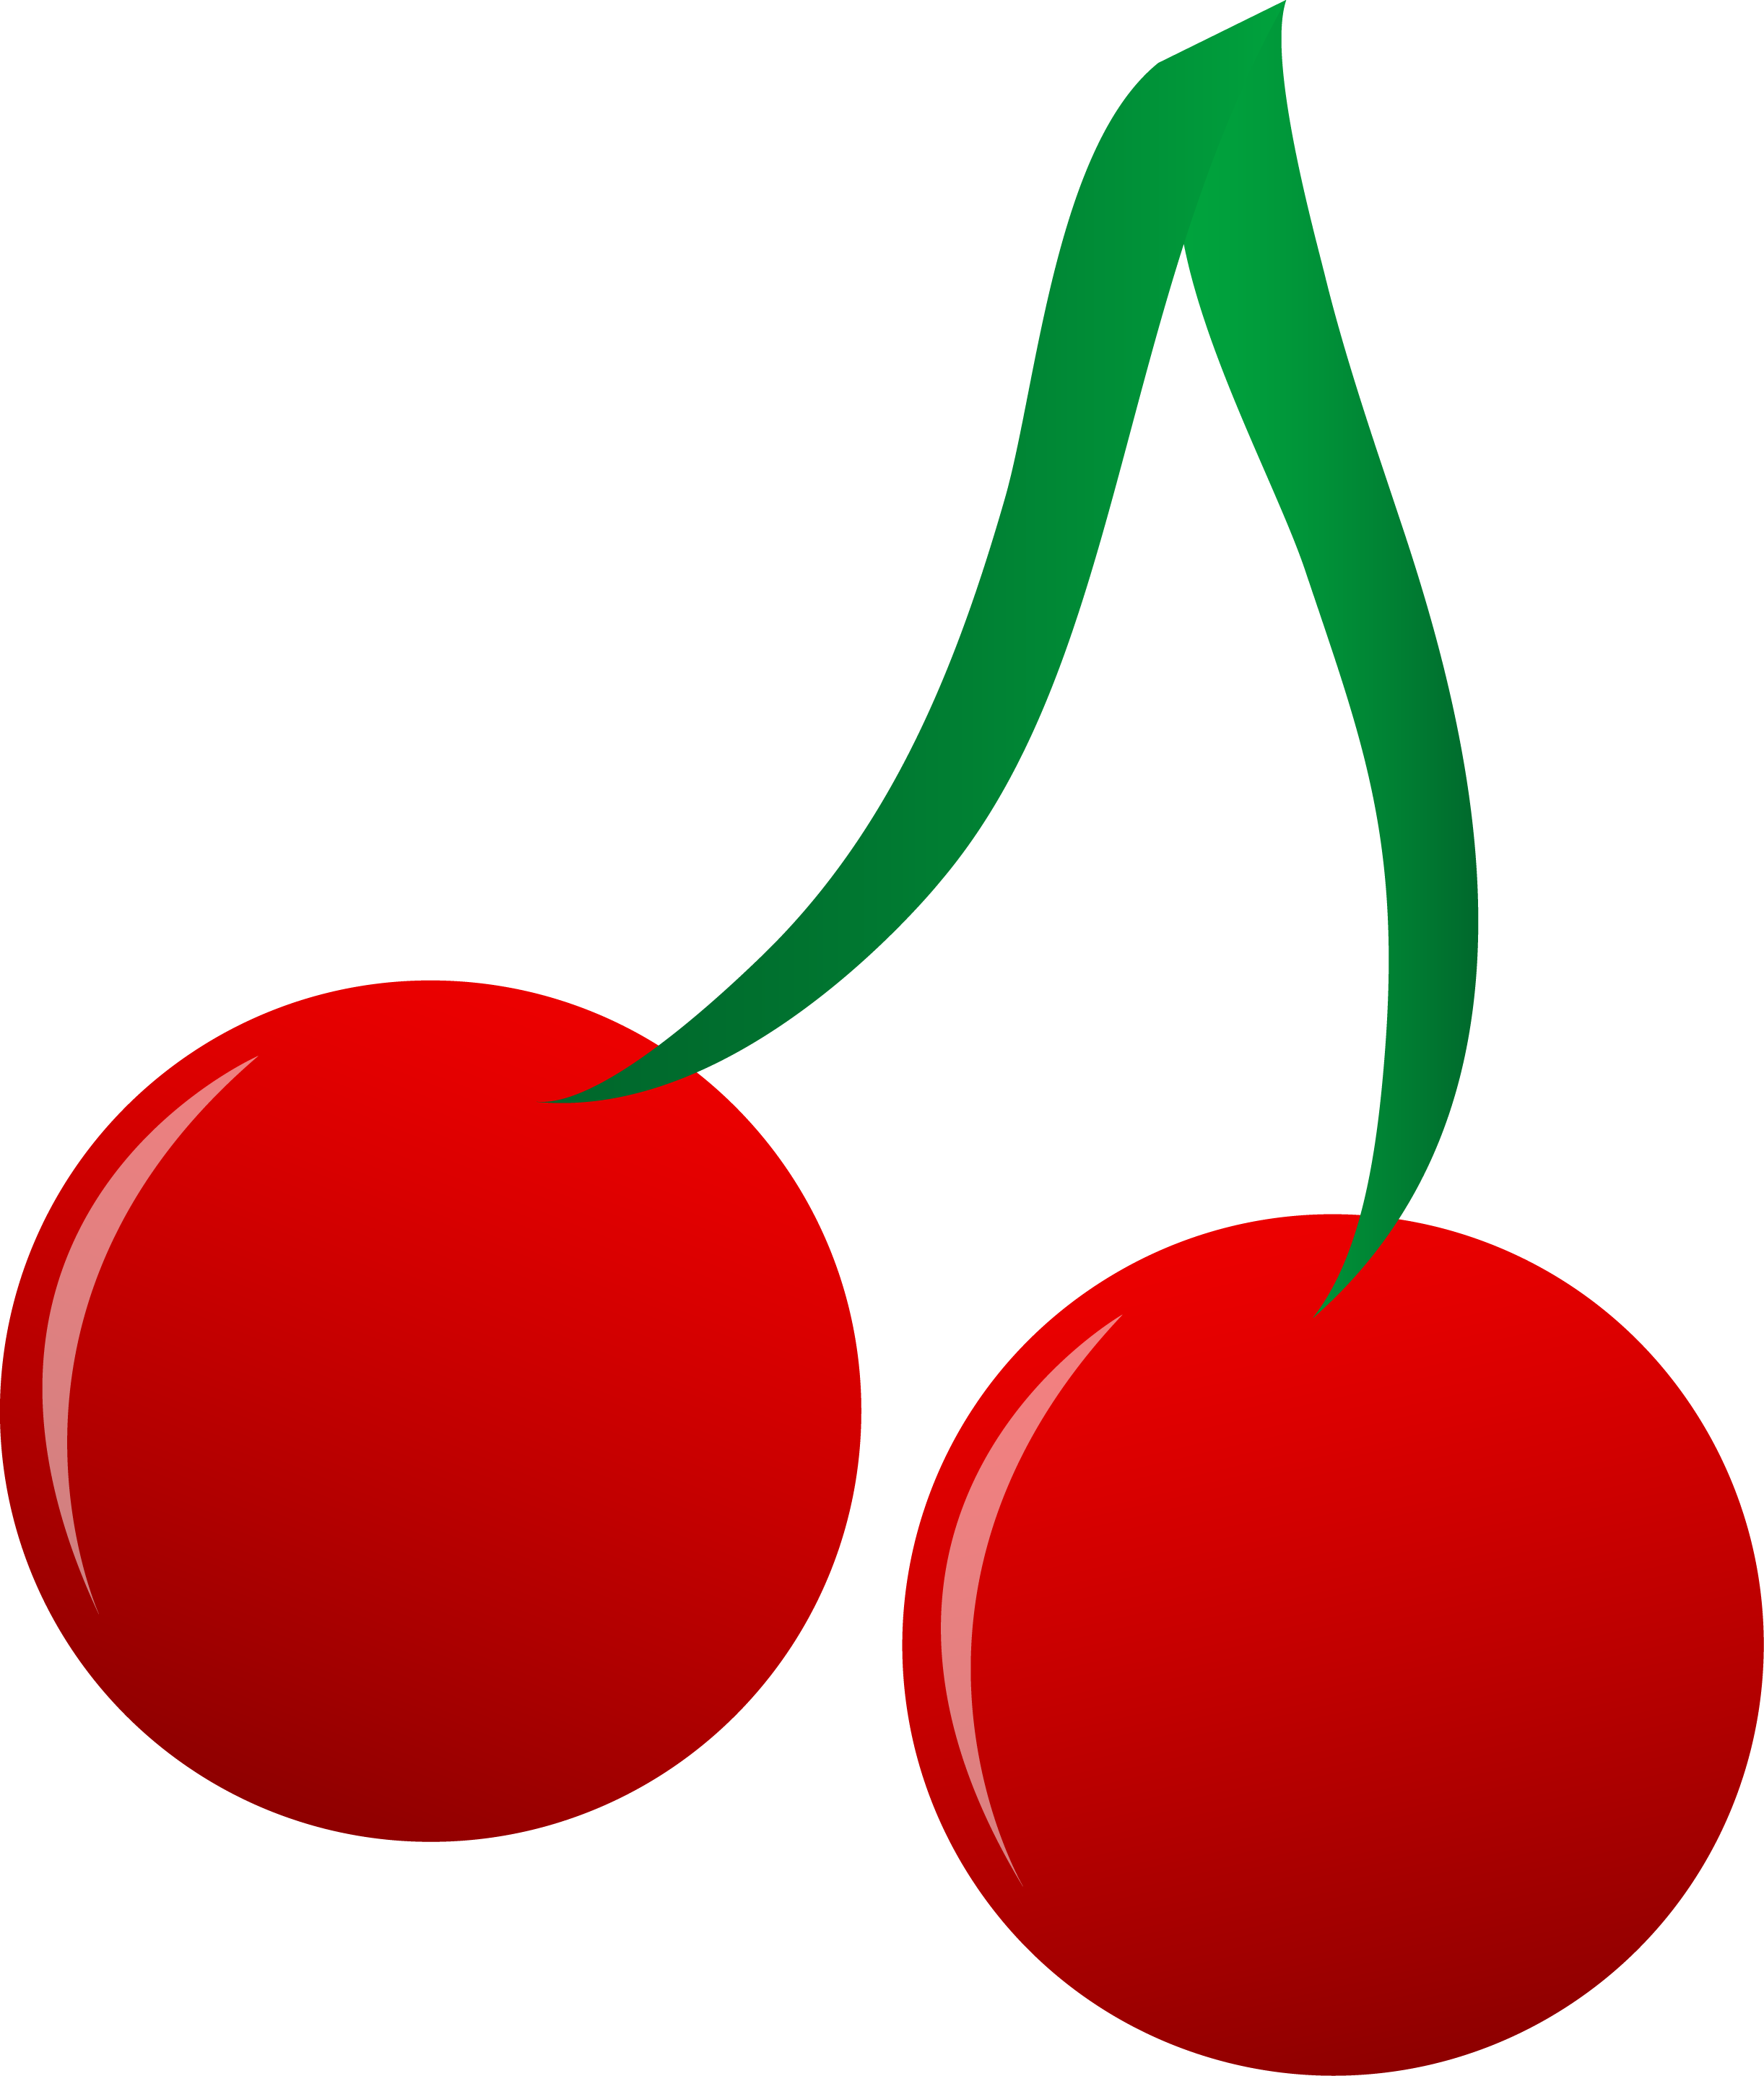 Bright Red Cherries Vector Art.